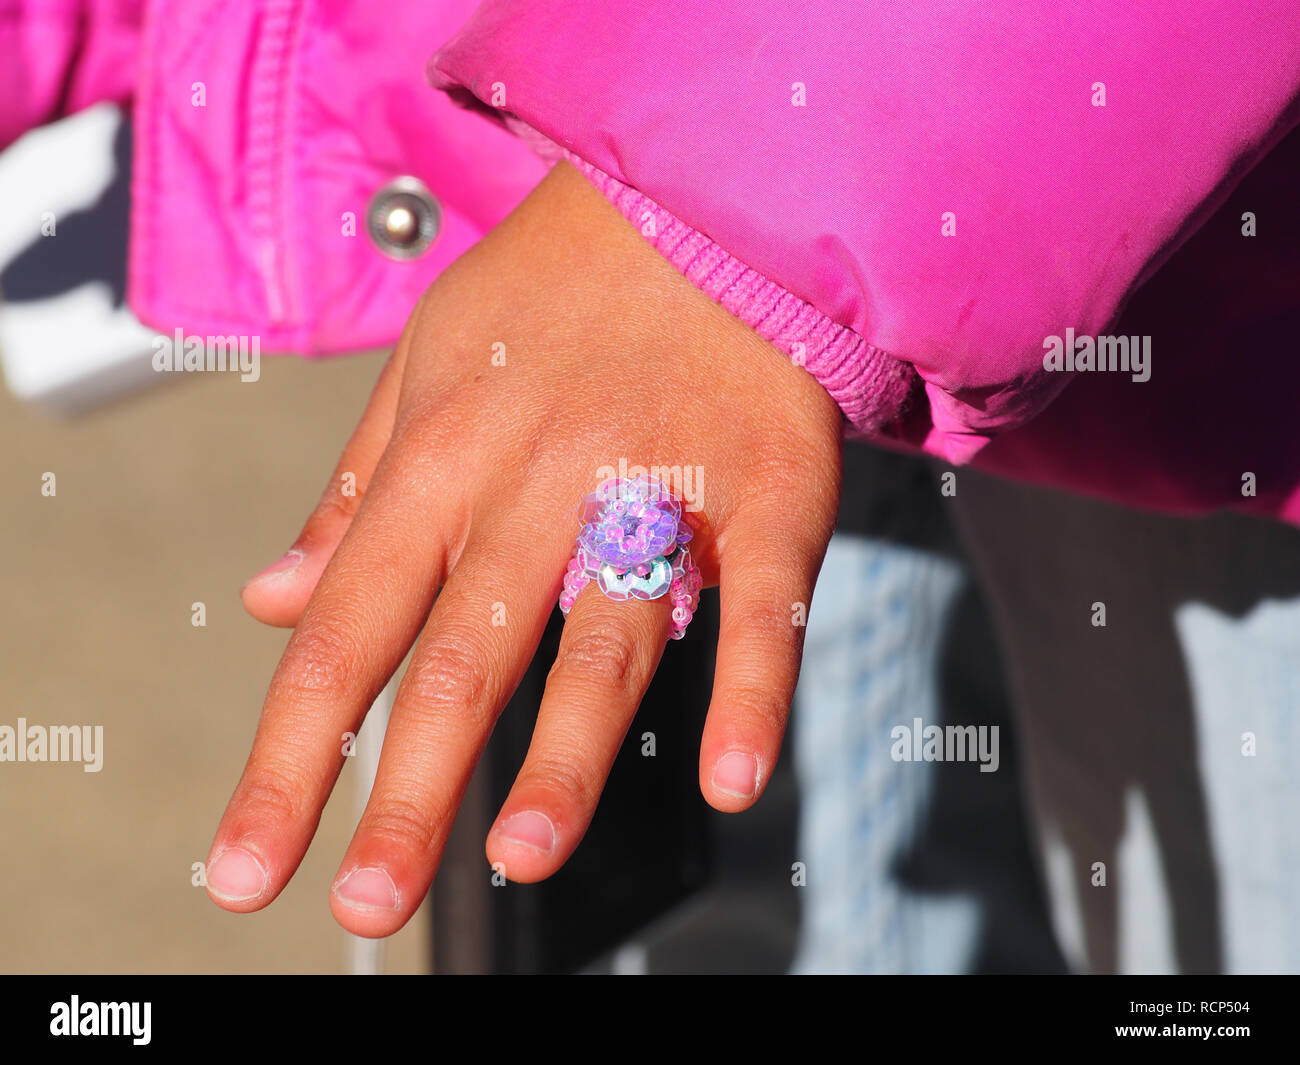 Little plastic ring kid bought from the gift shop at Huntington Library - Stock Image